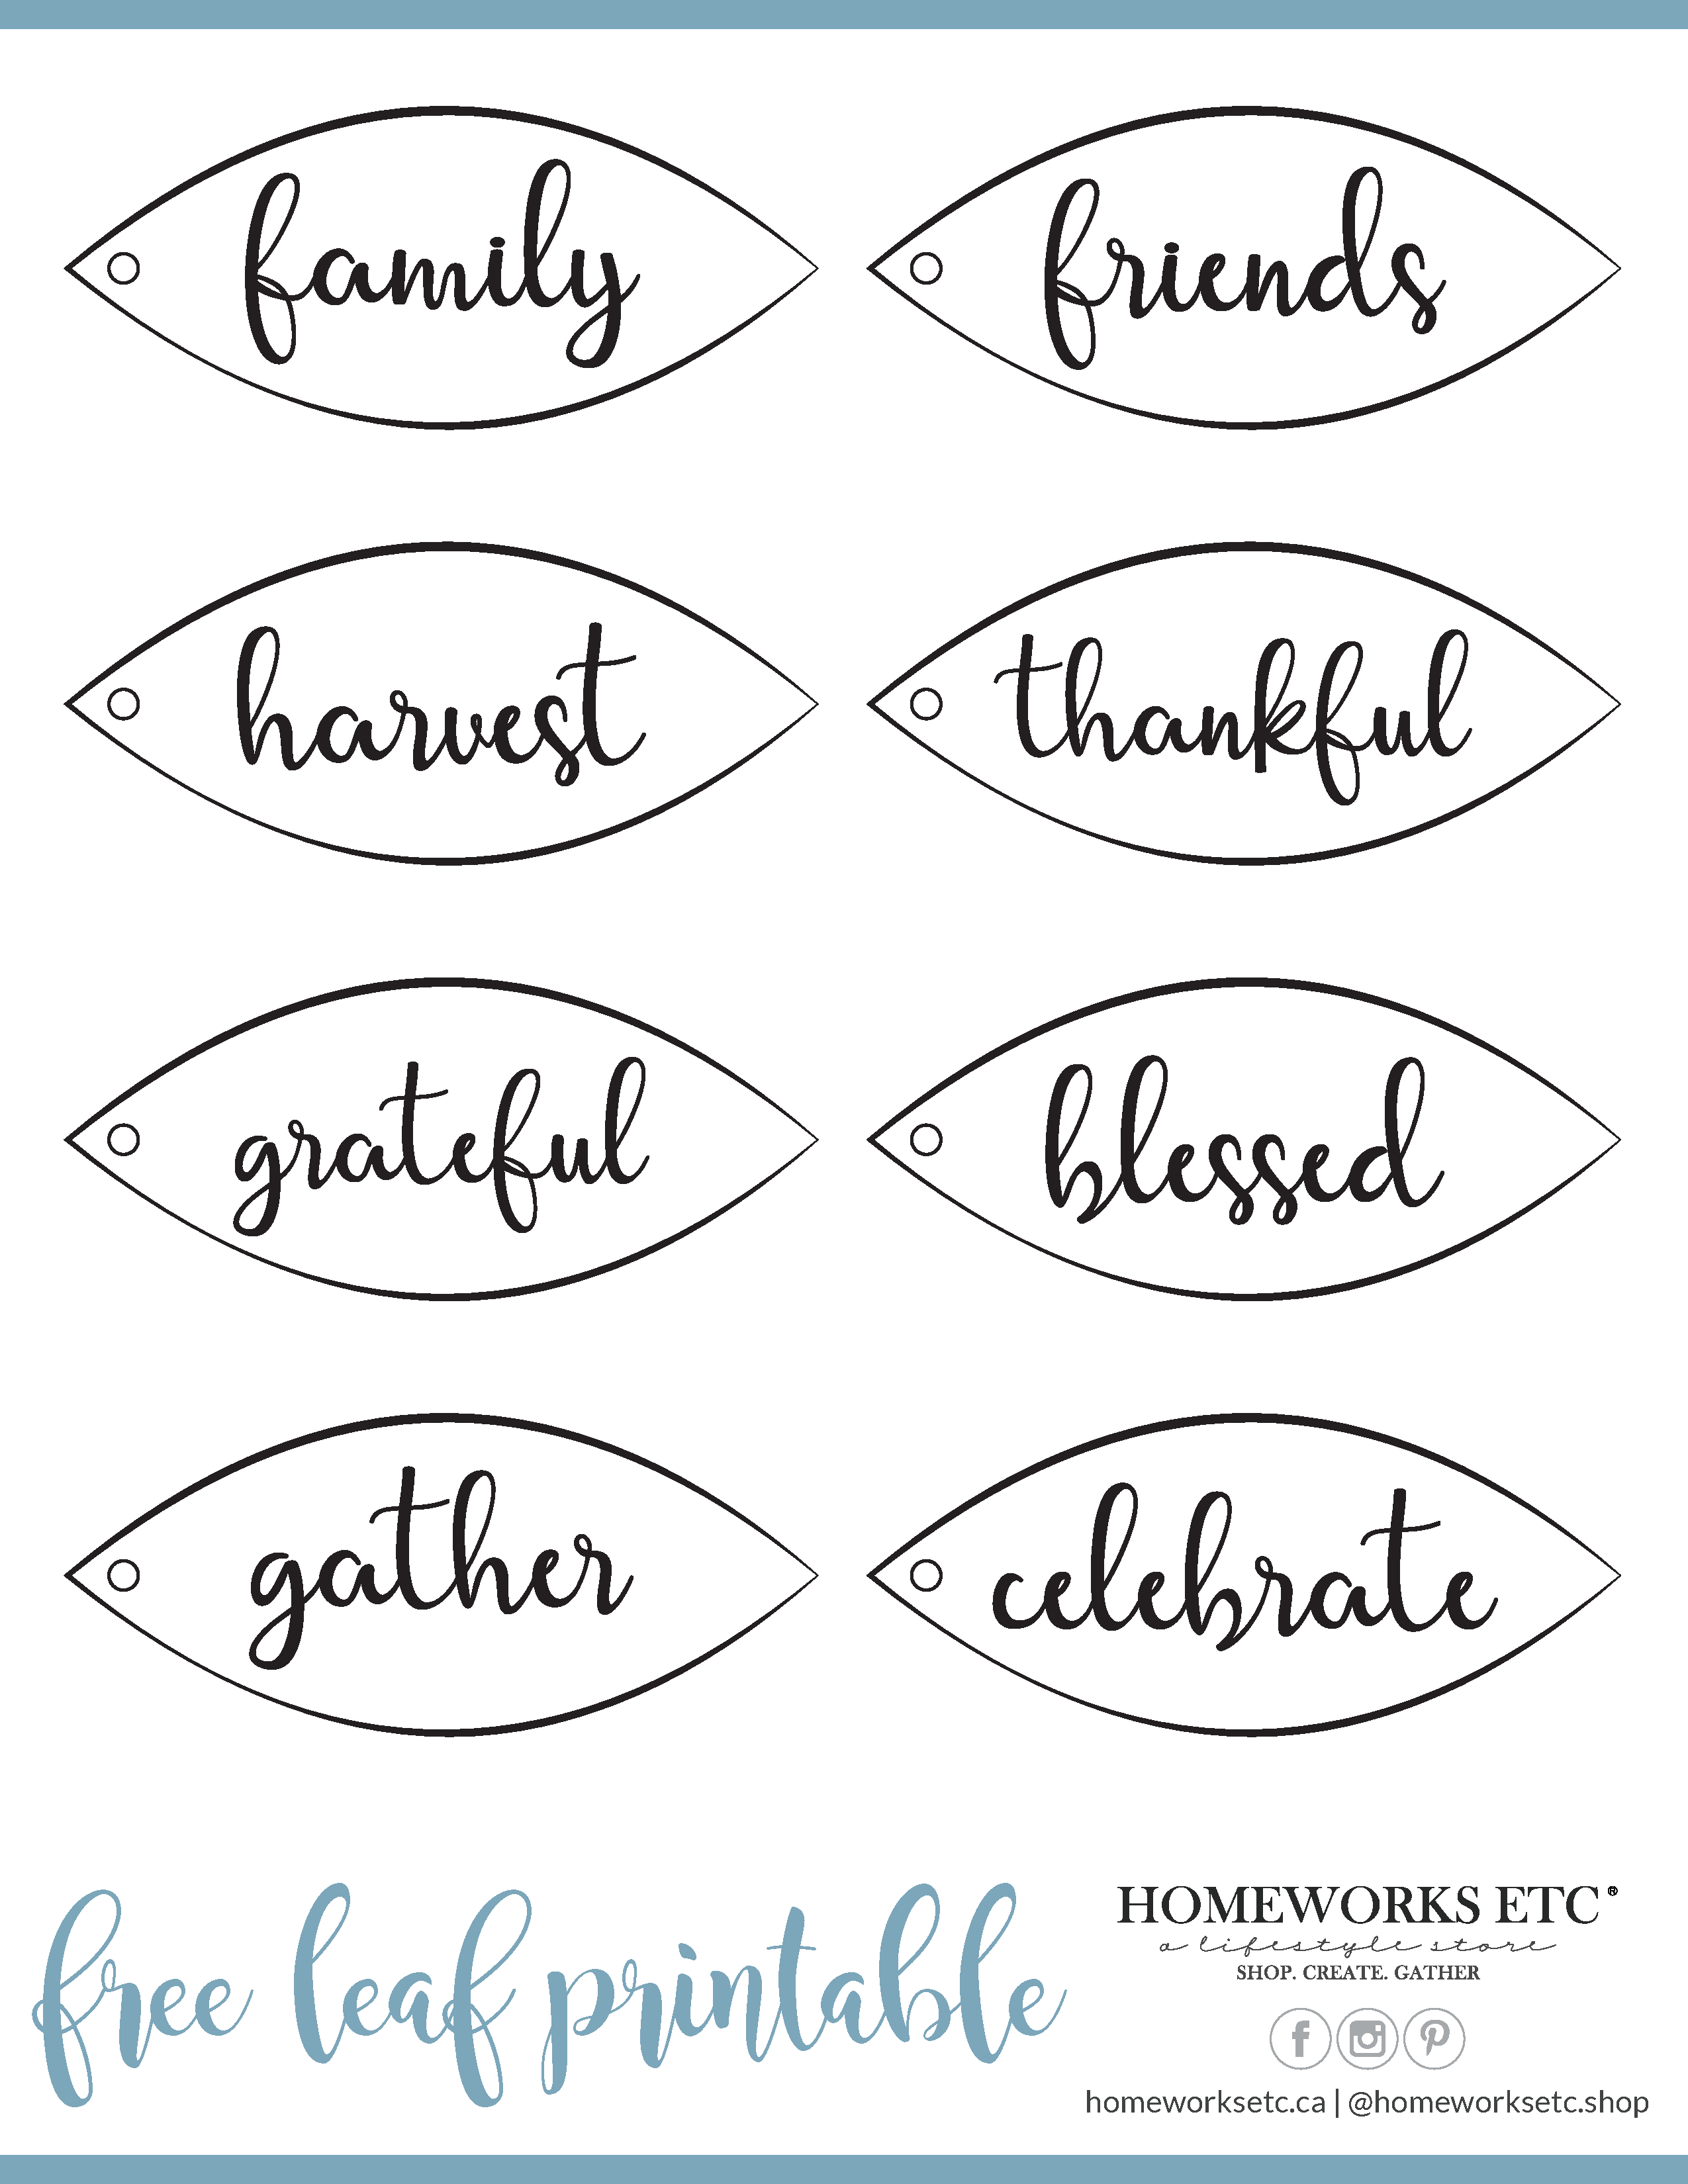 How to DIY a simple Thanksgiving gift - Homeworks Etc.